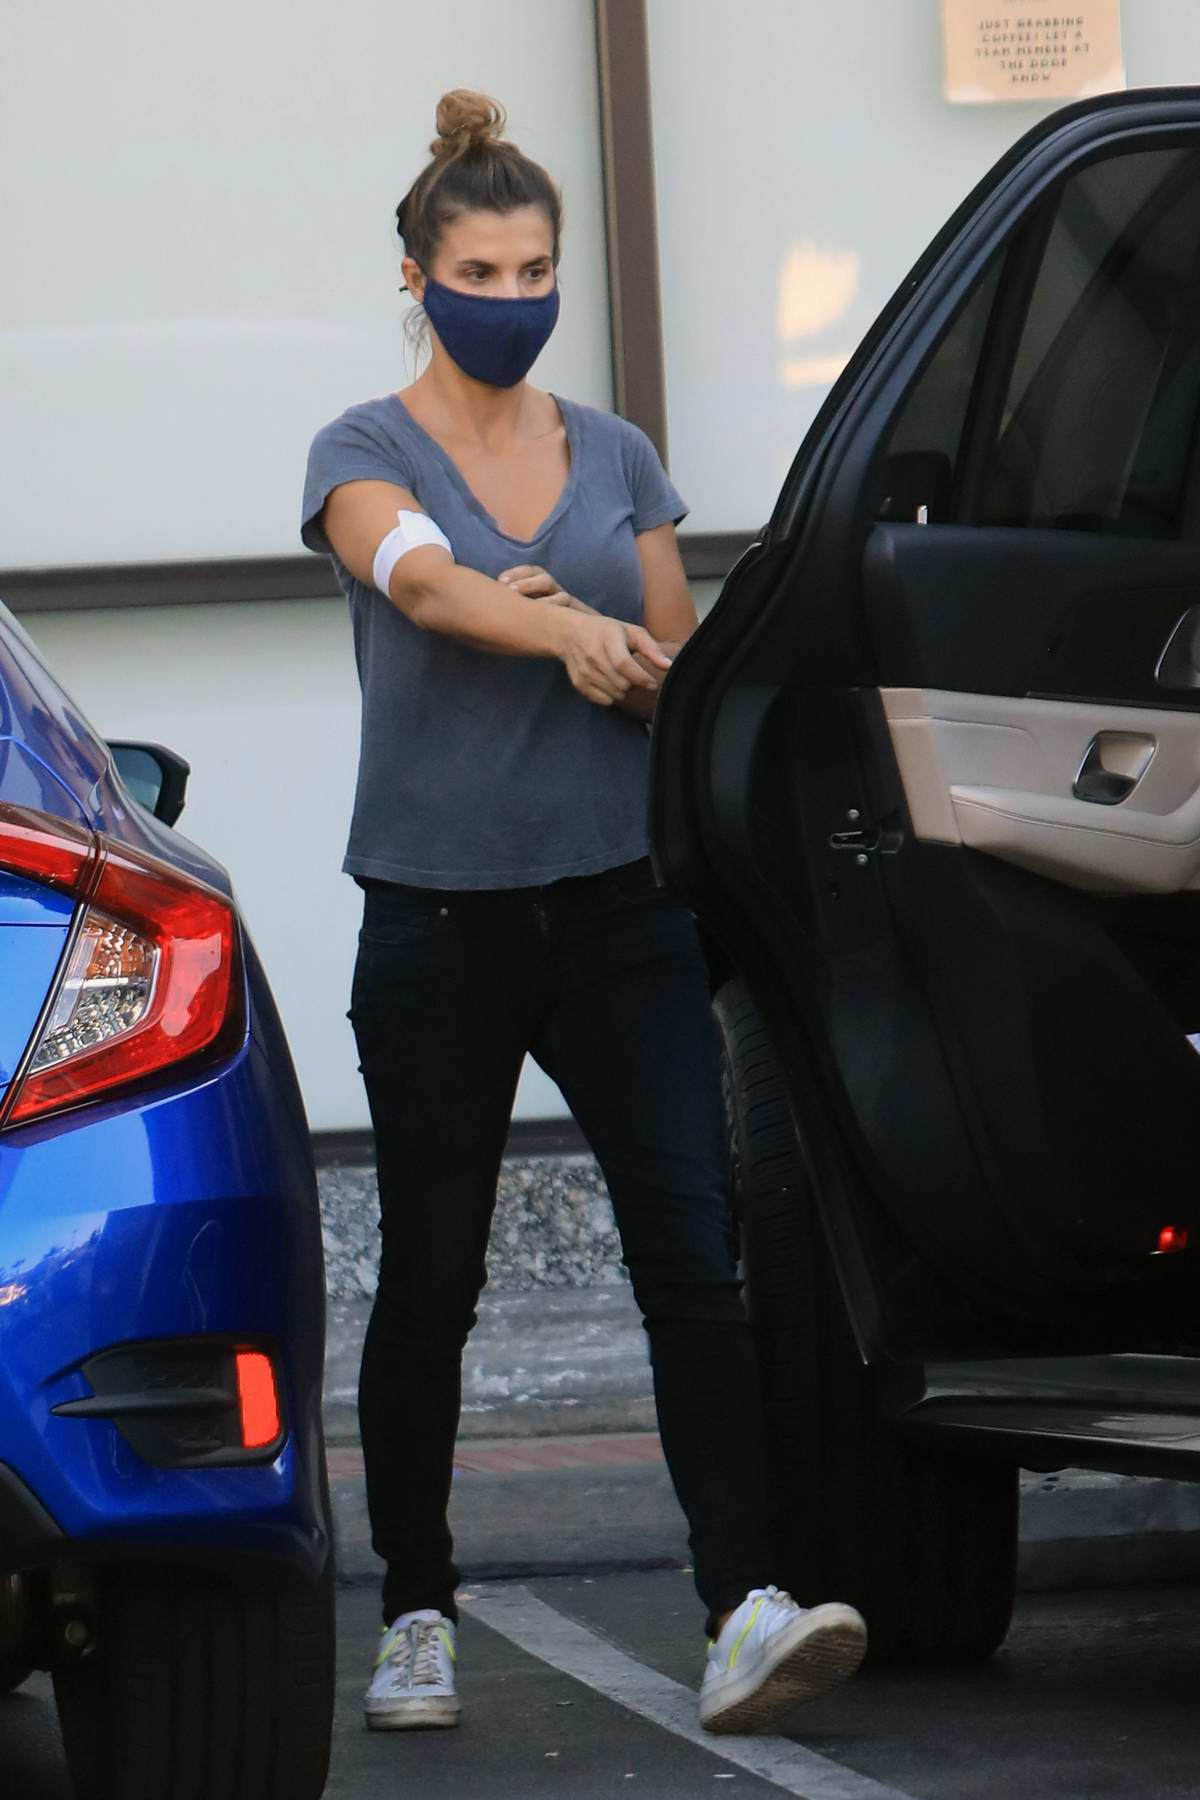 Elisabetta Canalis spotted with a bandage on her arm while out grocery shopping in West Hollywood, California